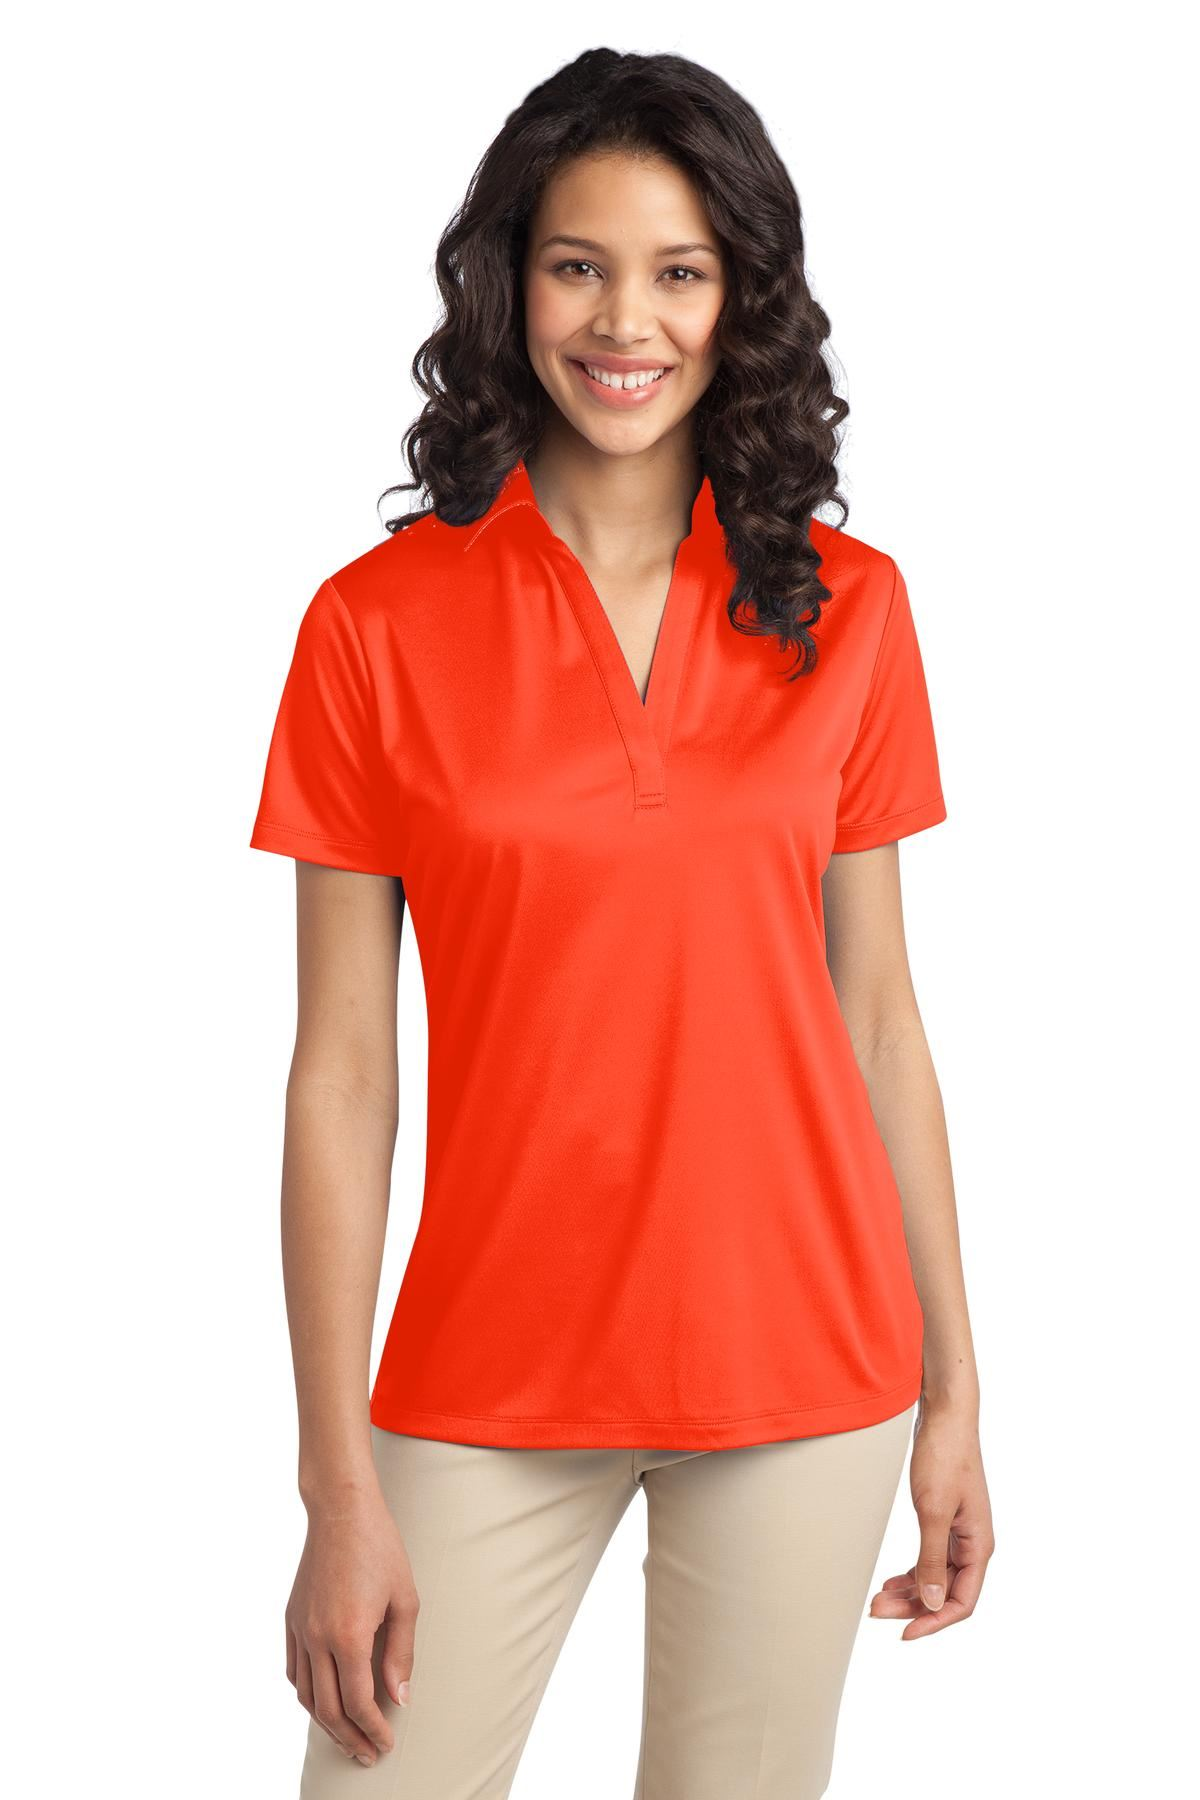 Port-Authority-Womens-Dri-Fit-SIlk-Touch-Performance-Polo-Golf-Shirt-M-L540 thumbnail 21